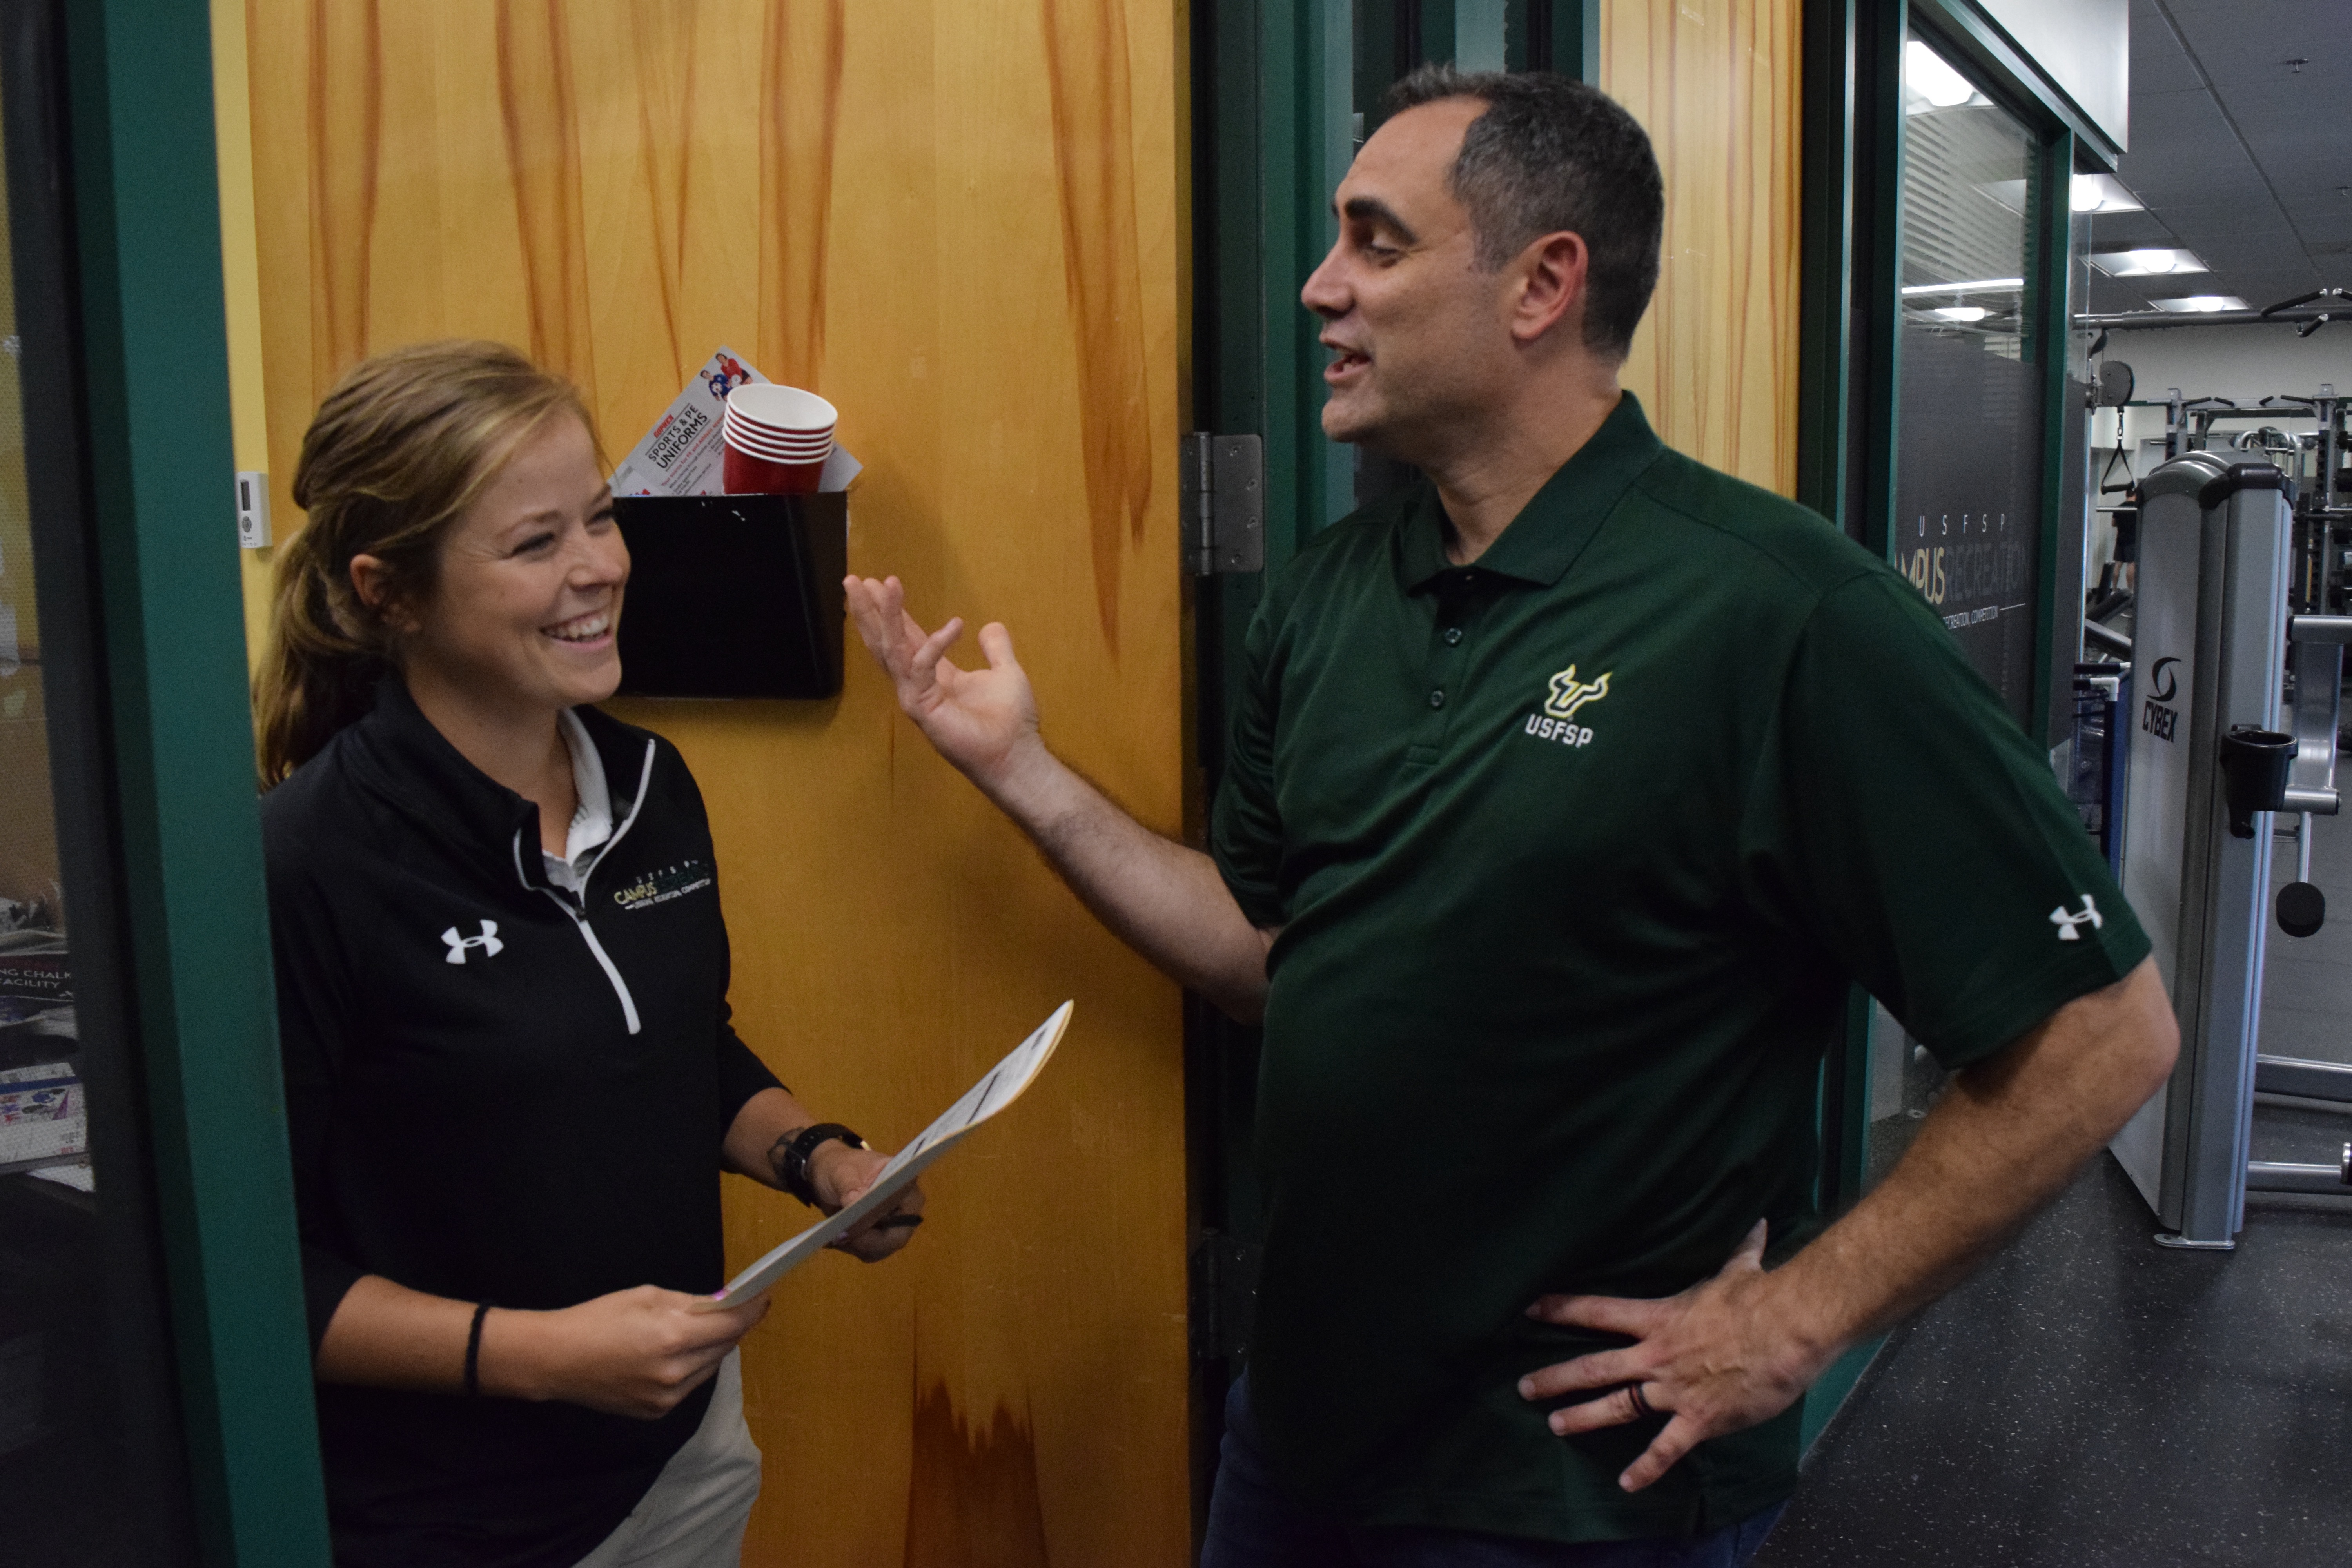 New head of Campus Rec focused on growing department